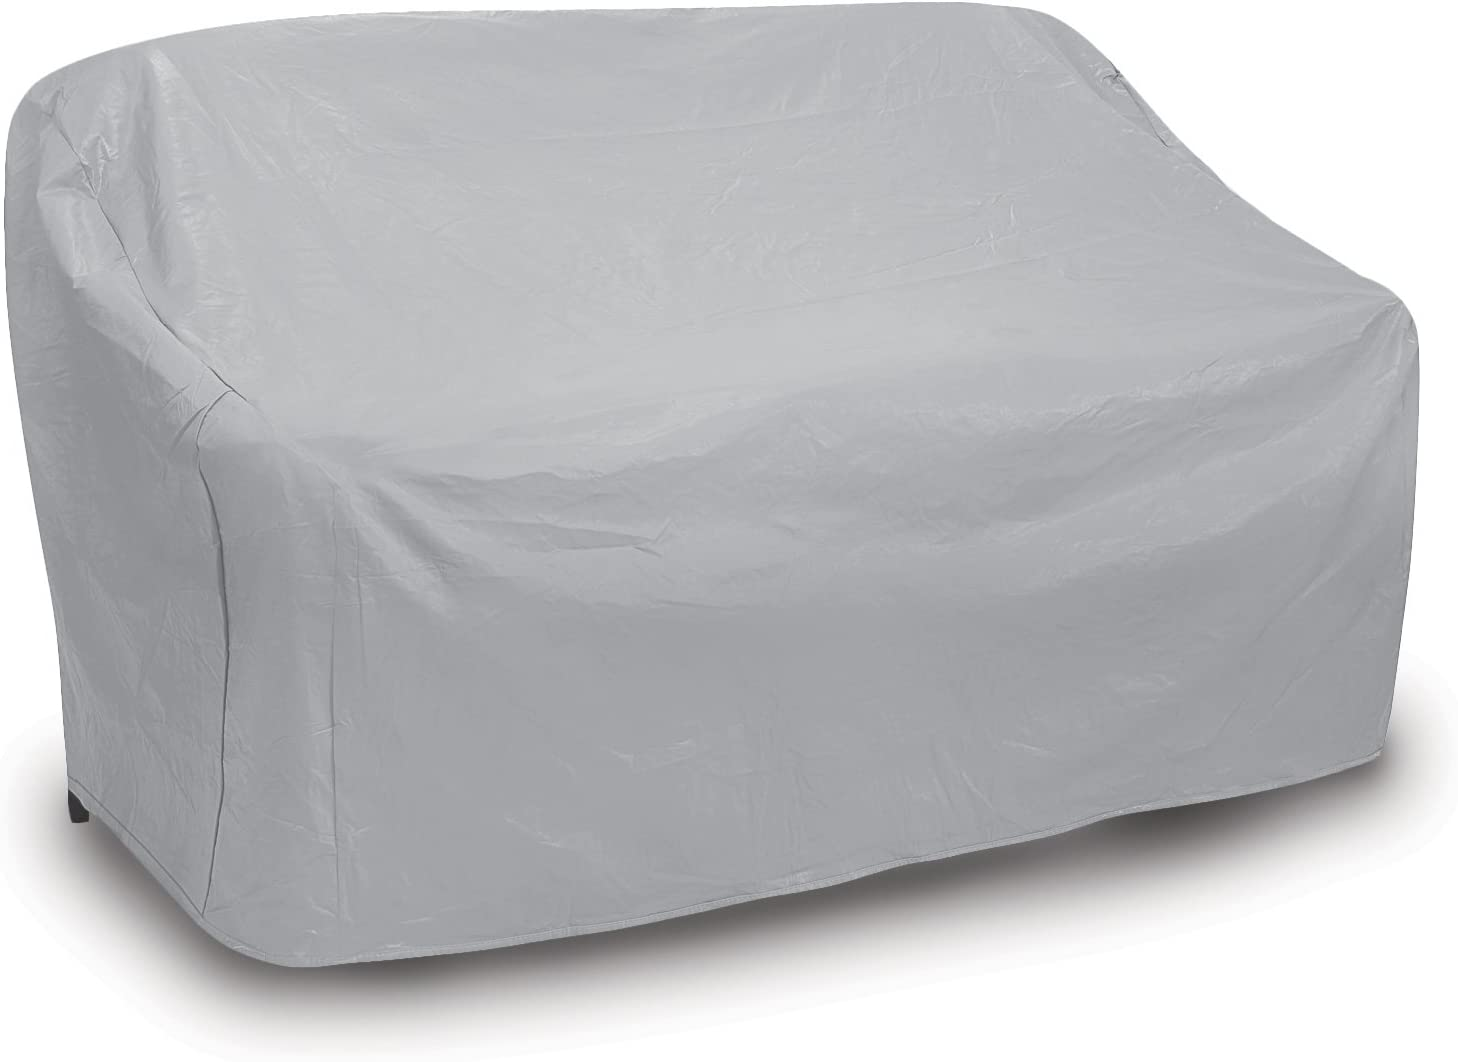 Protective Covers Weatherproof 2 Seat Wicker/Rattan Sofa Cover, Large, Gray - 1125